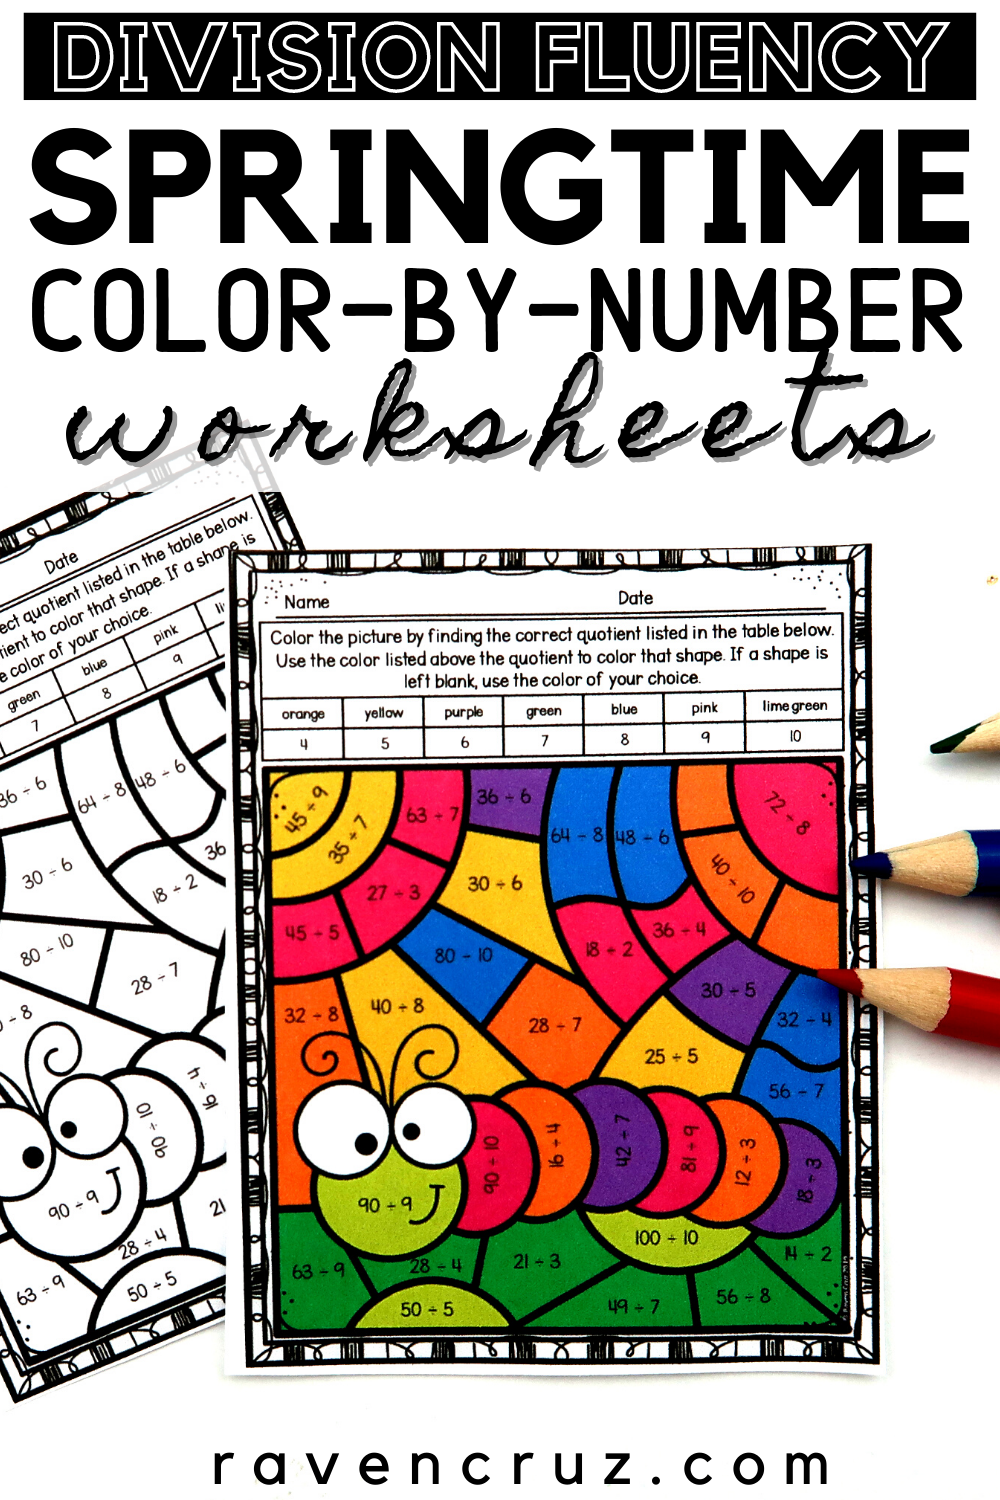 Spring Math Division Color By Number Worksheets In 2021 Math Division Spring Math Elementary Math Centers [ 1500 x 1000 Pixel ]